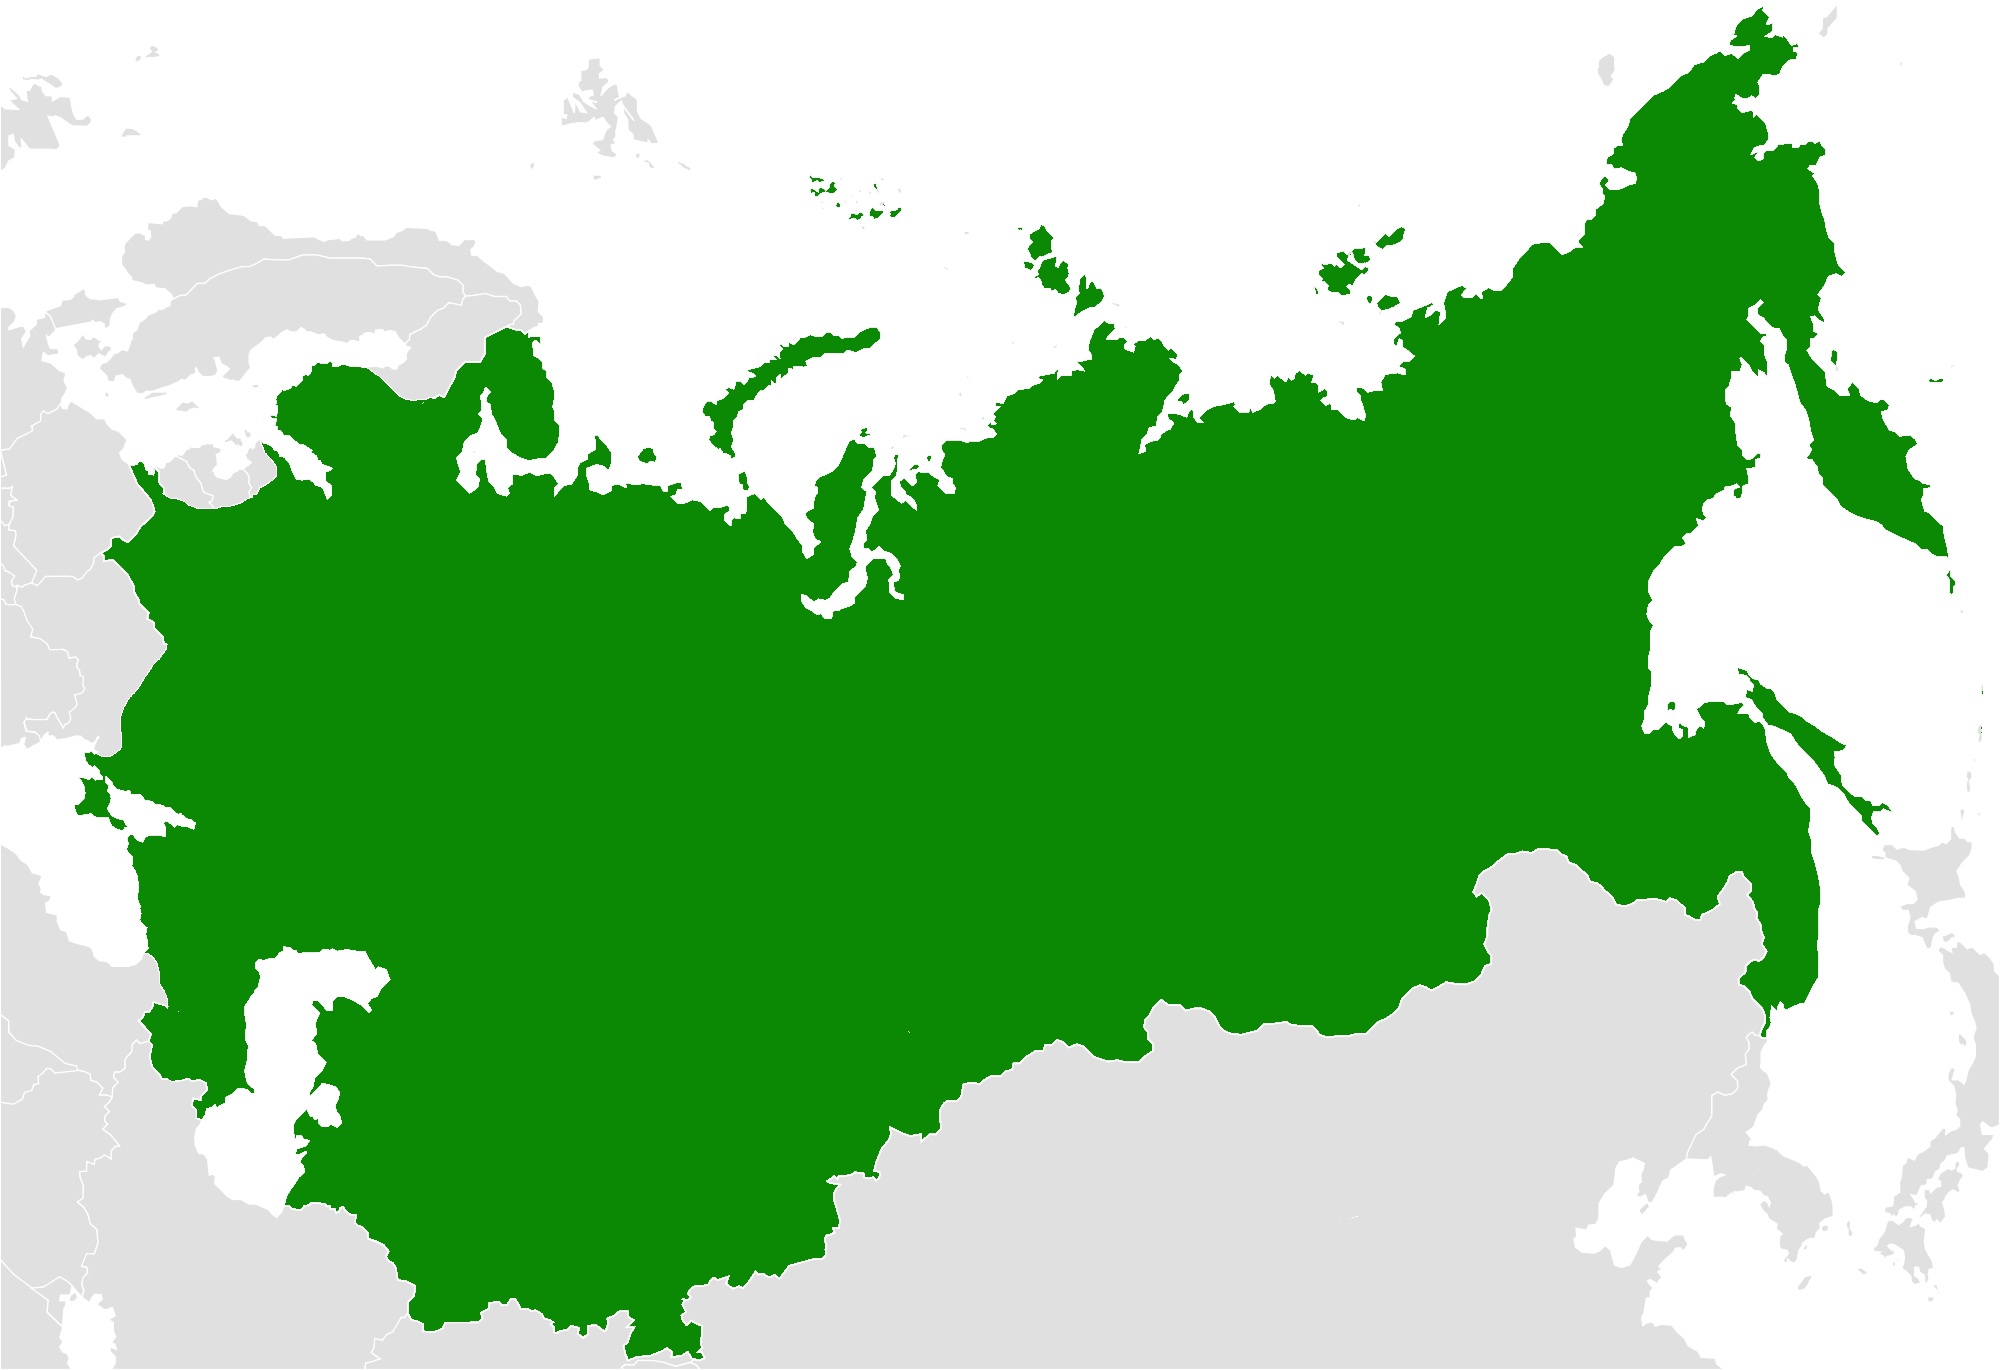 Russian Federation Position 16